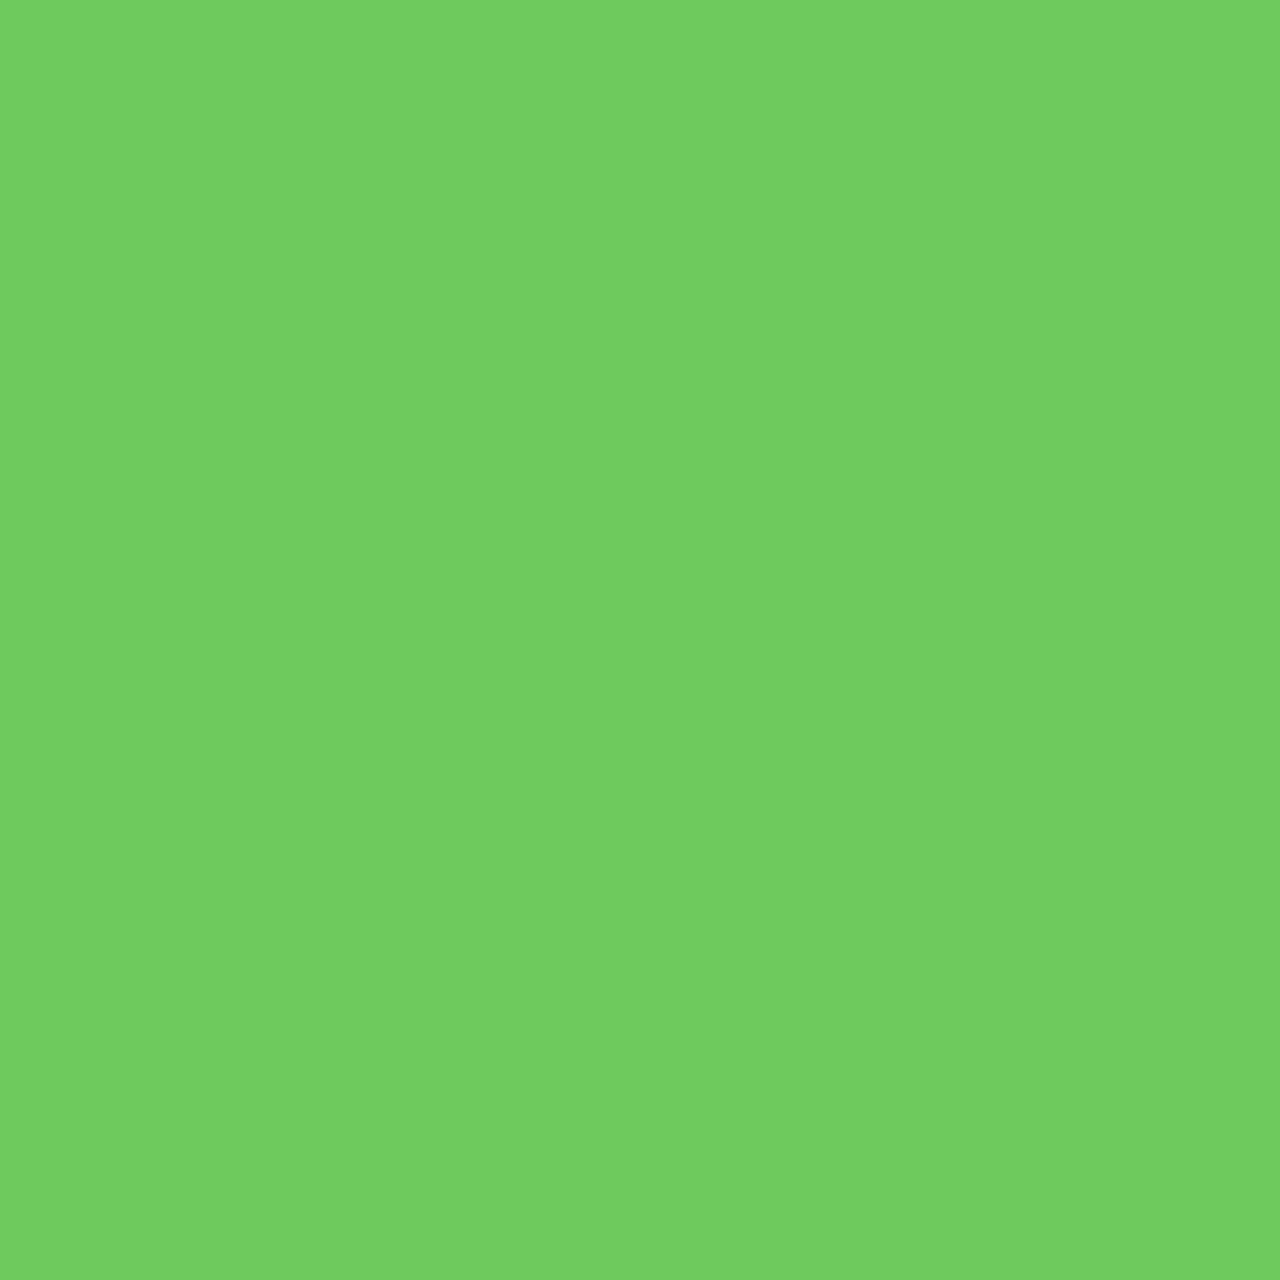 #4460 Rosco Gels Roscolux CalColor 60 Green, 20x24""